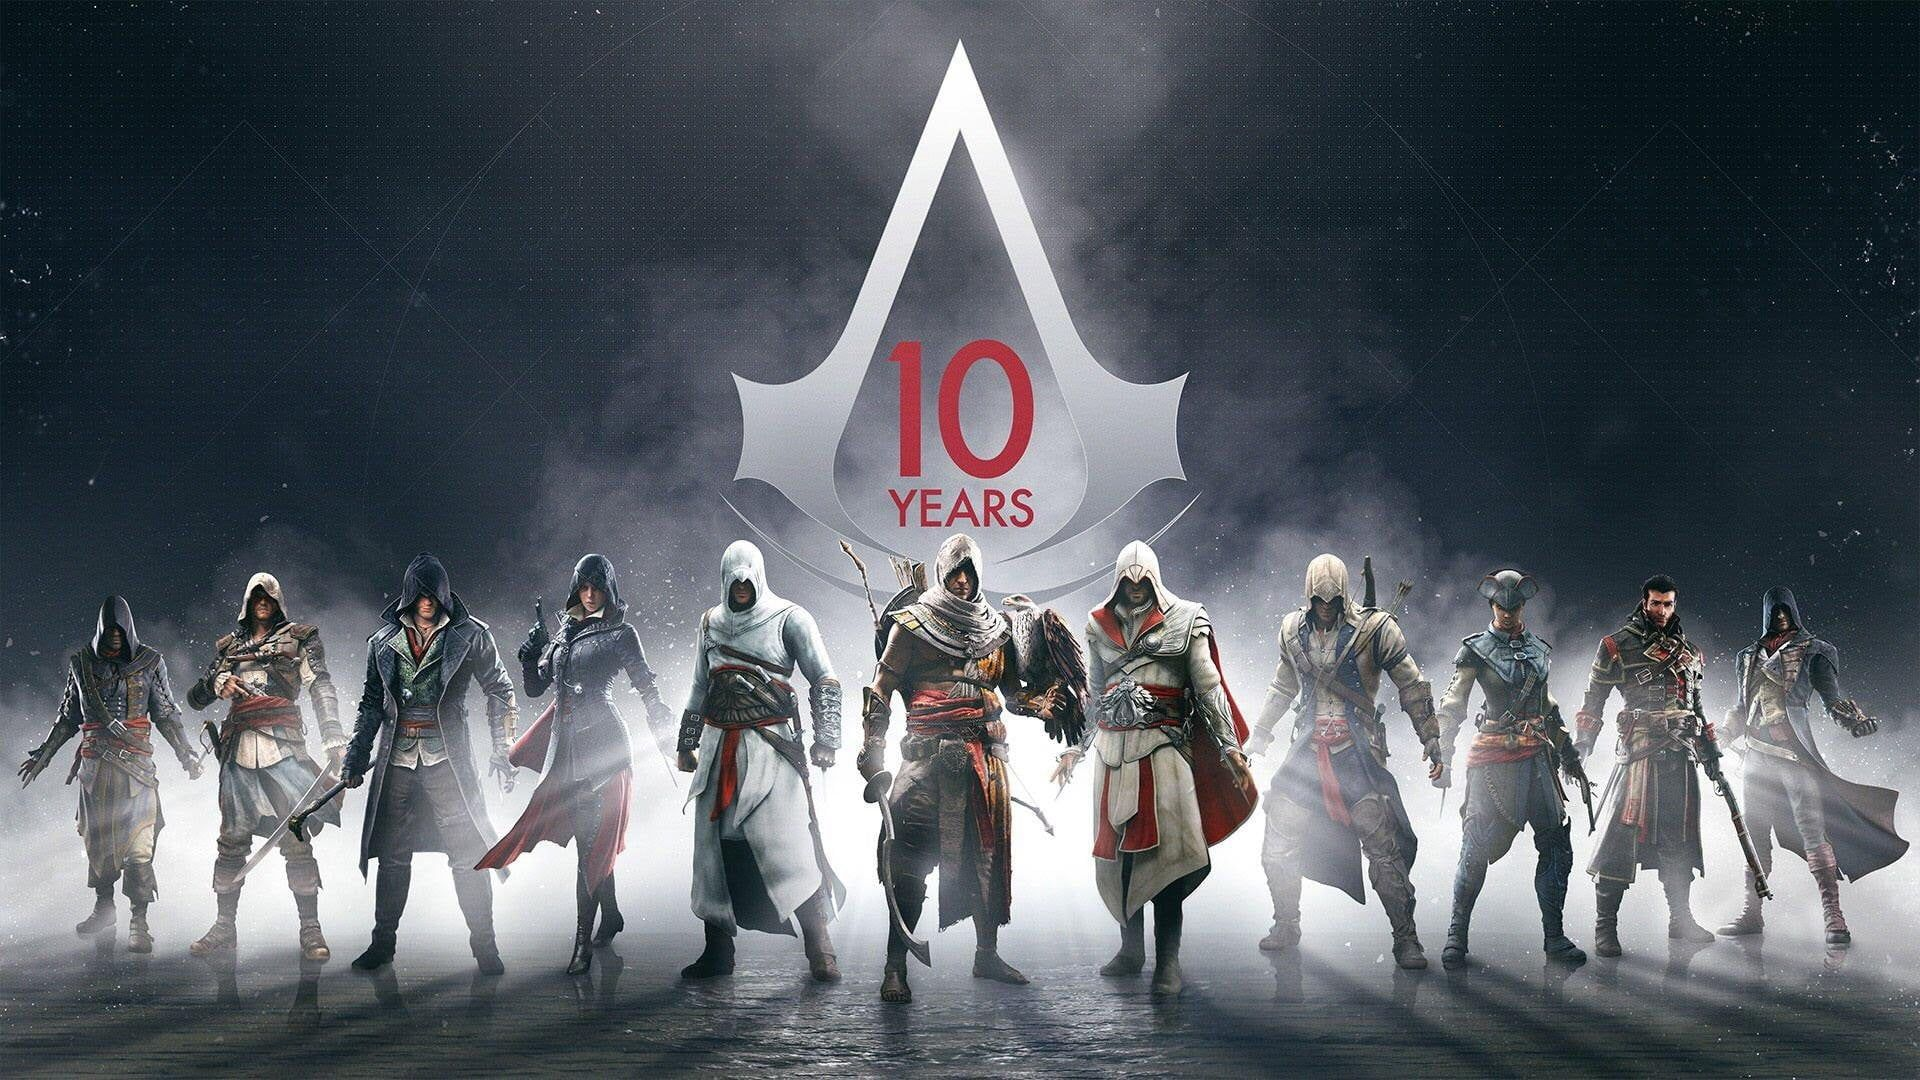 Assassin S Creed Poster Assassin S Creed Assassin S Creed 10 Years